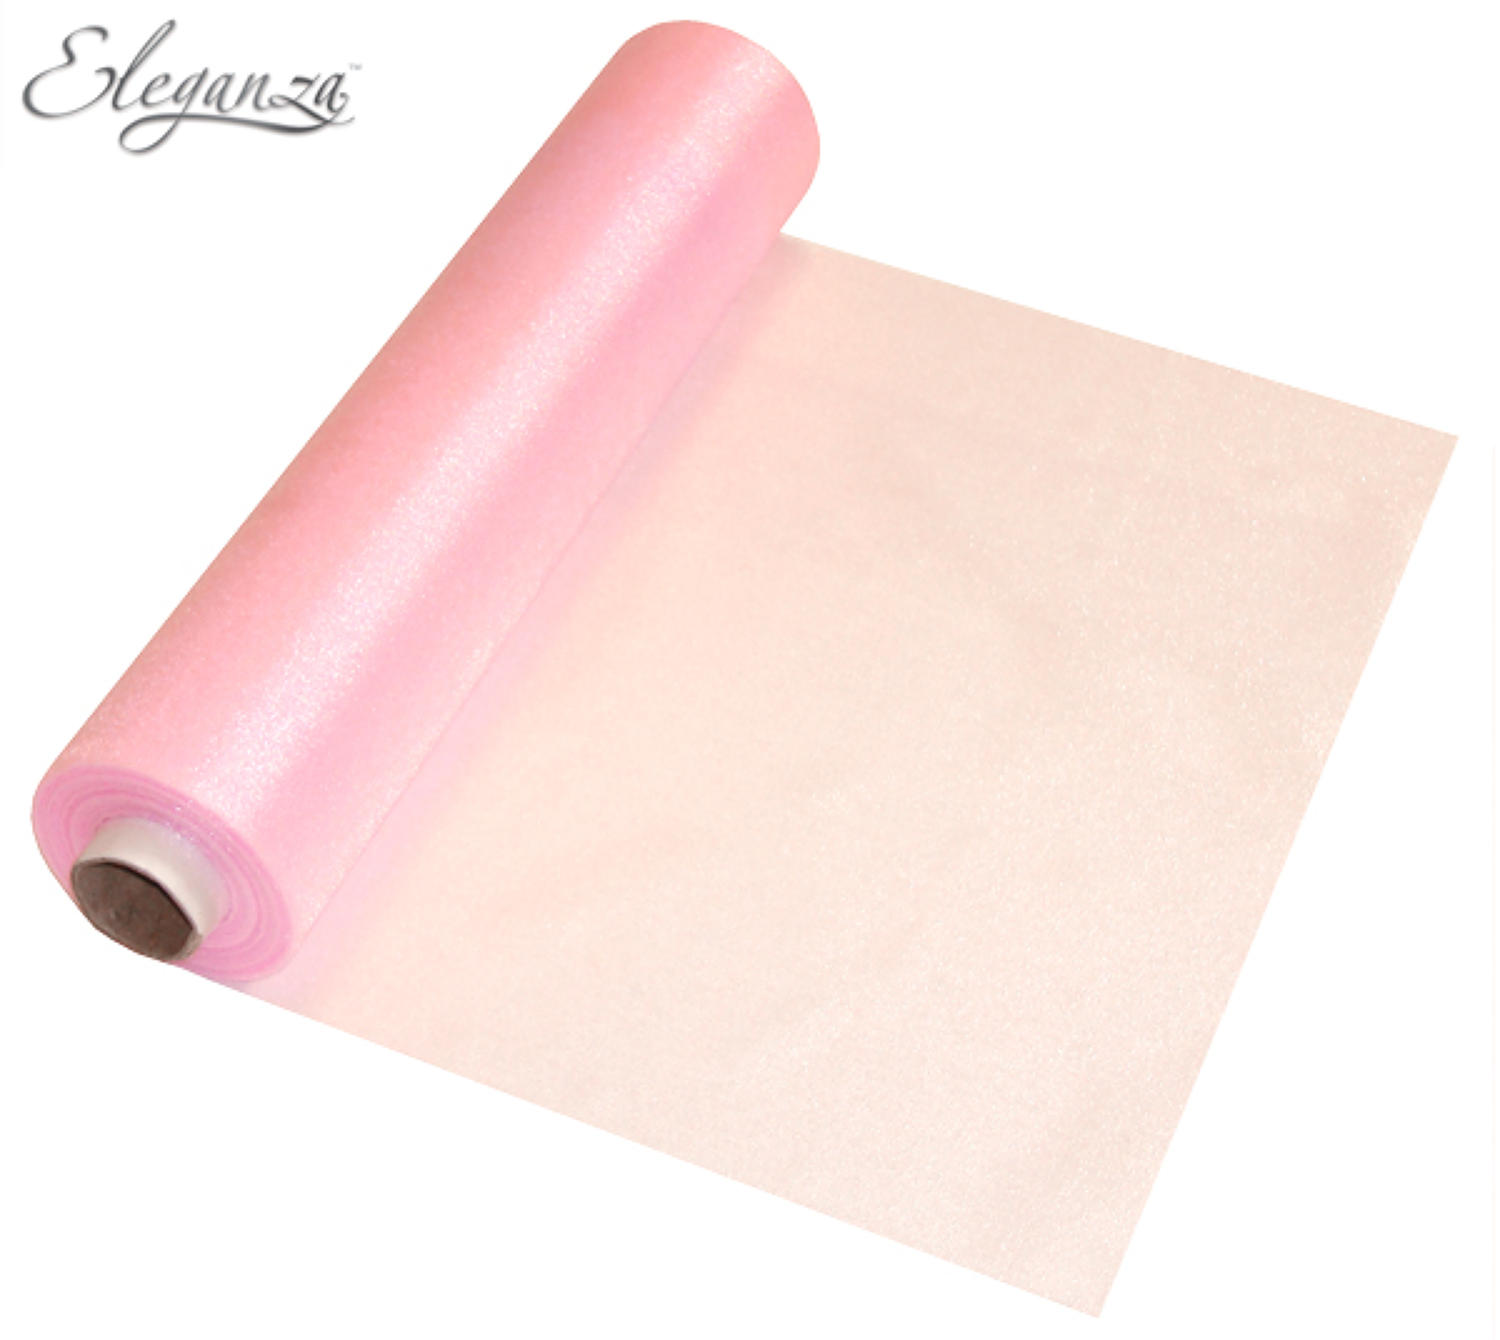 Soft pink organza table runner